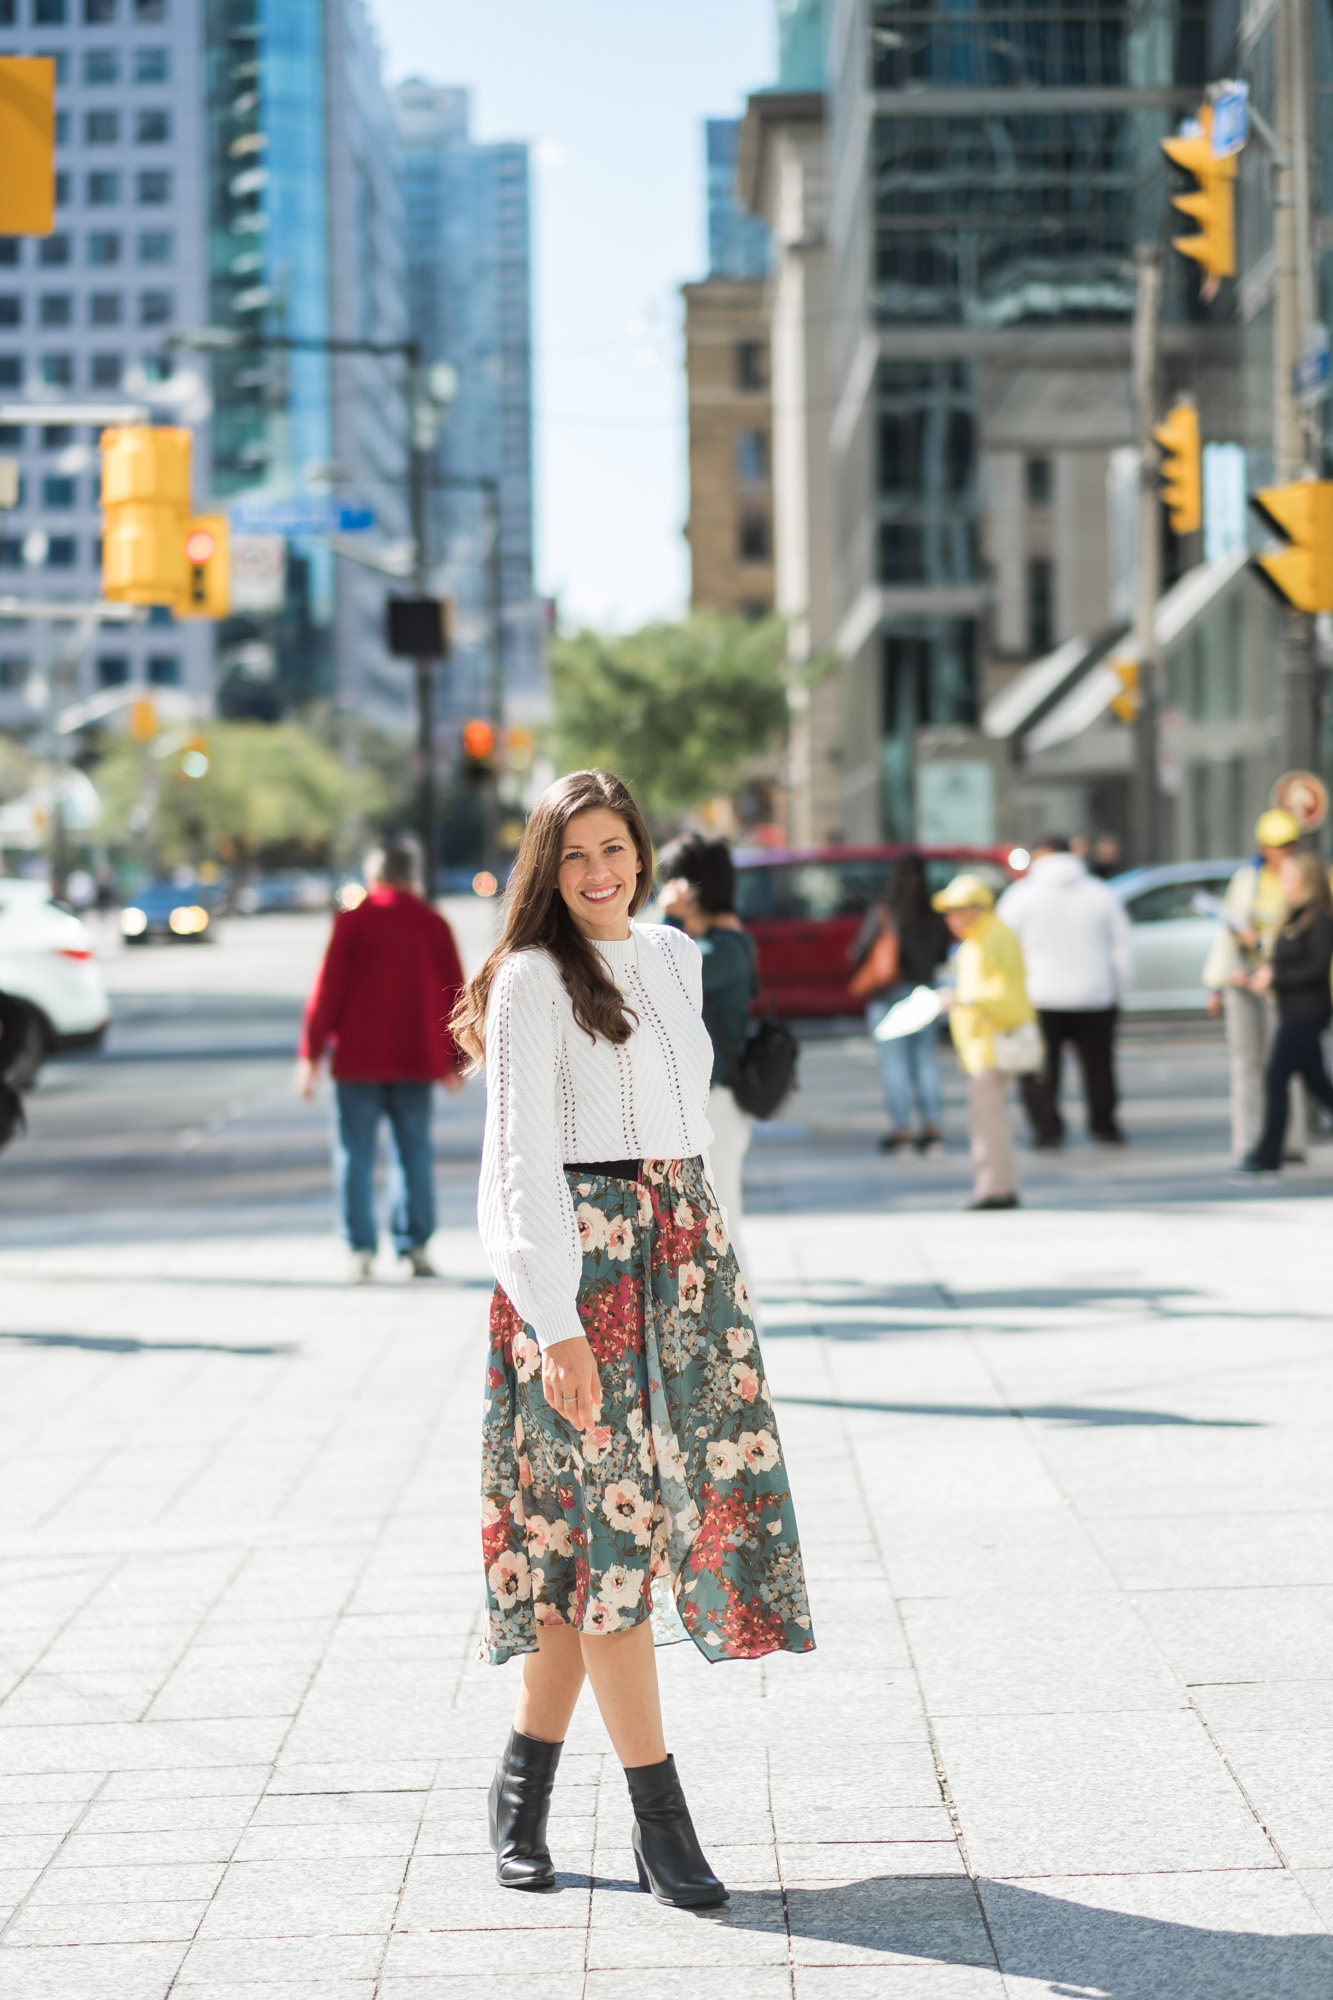 Wild Rosebuds in Downtown Toronto wearing Floral Zara Skirt and White Sweater from Forever 21